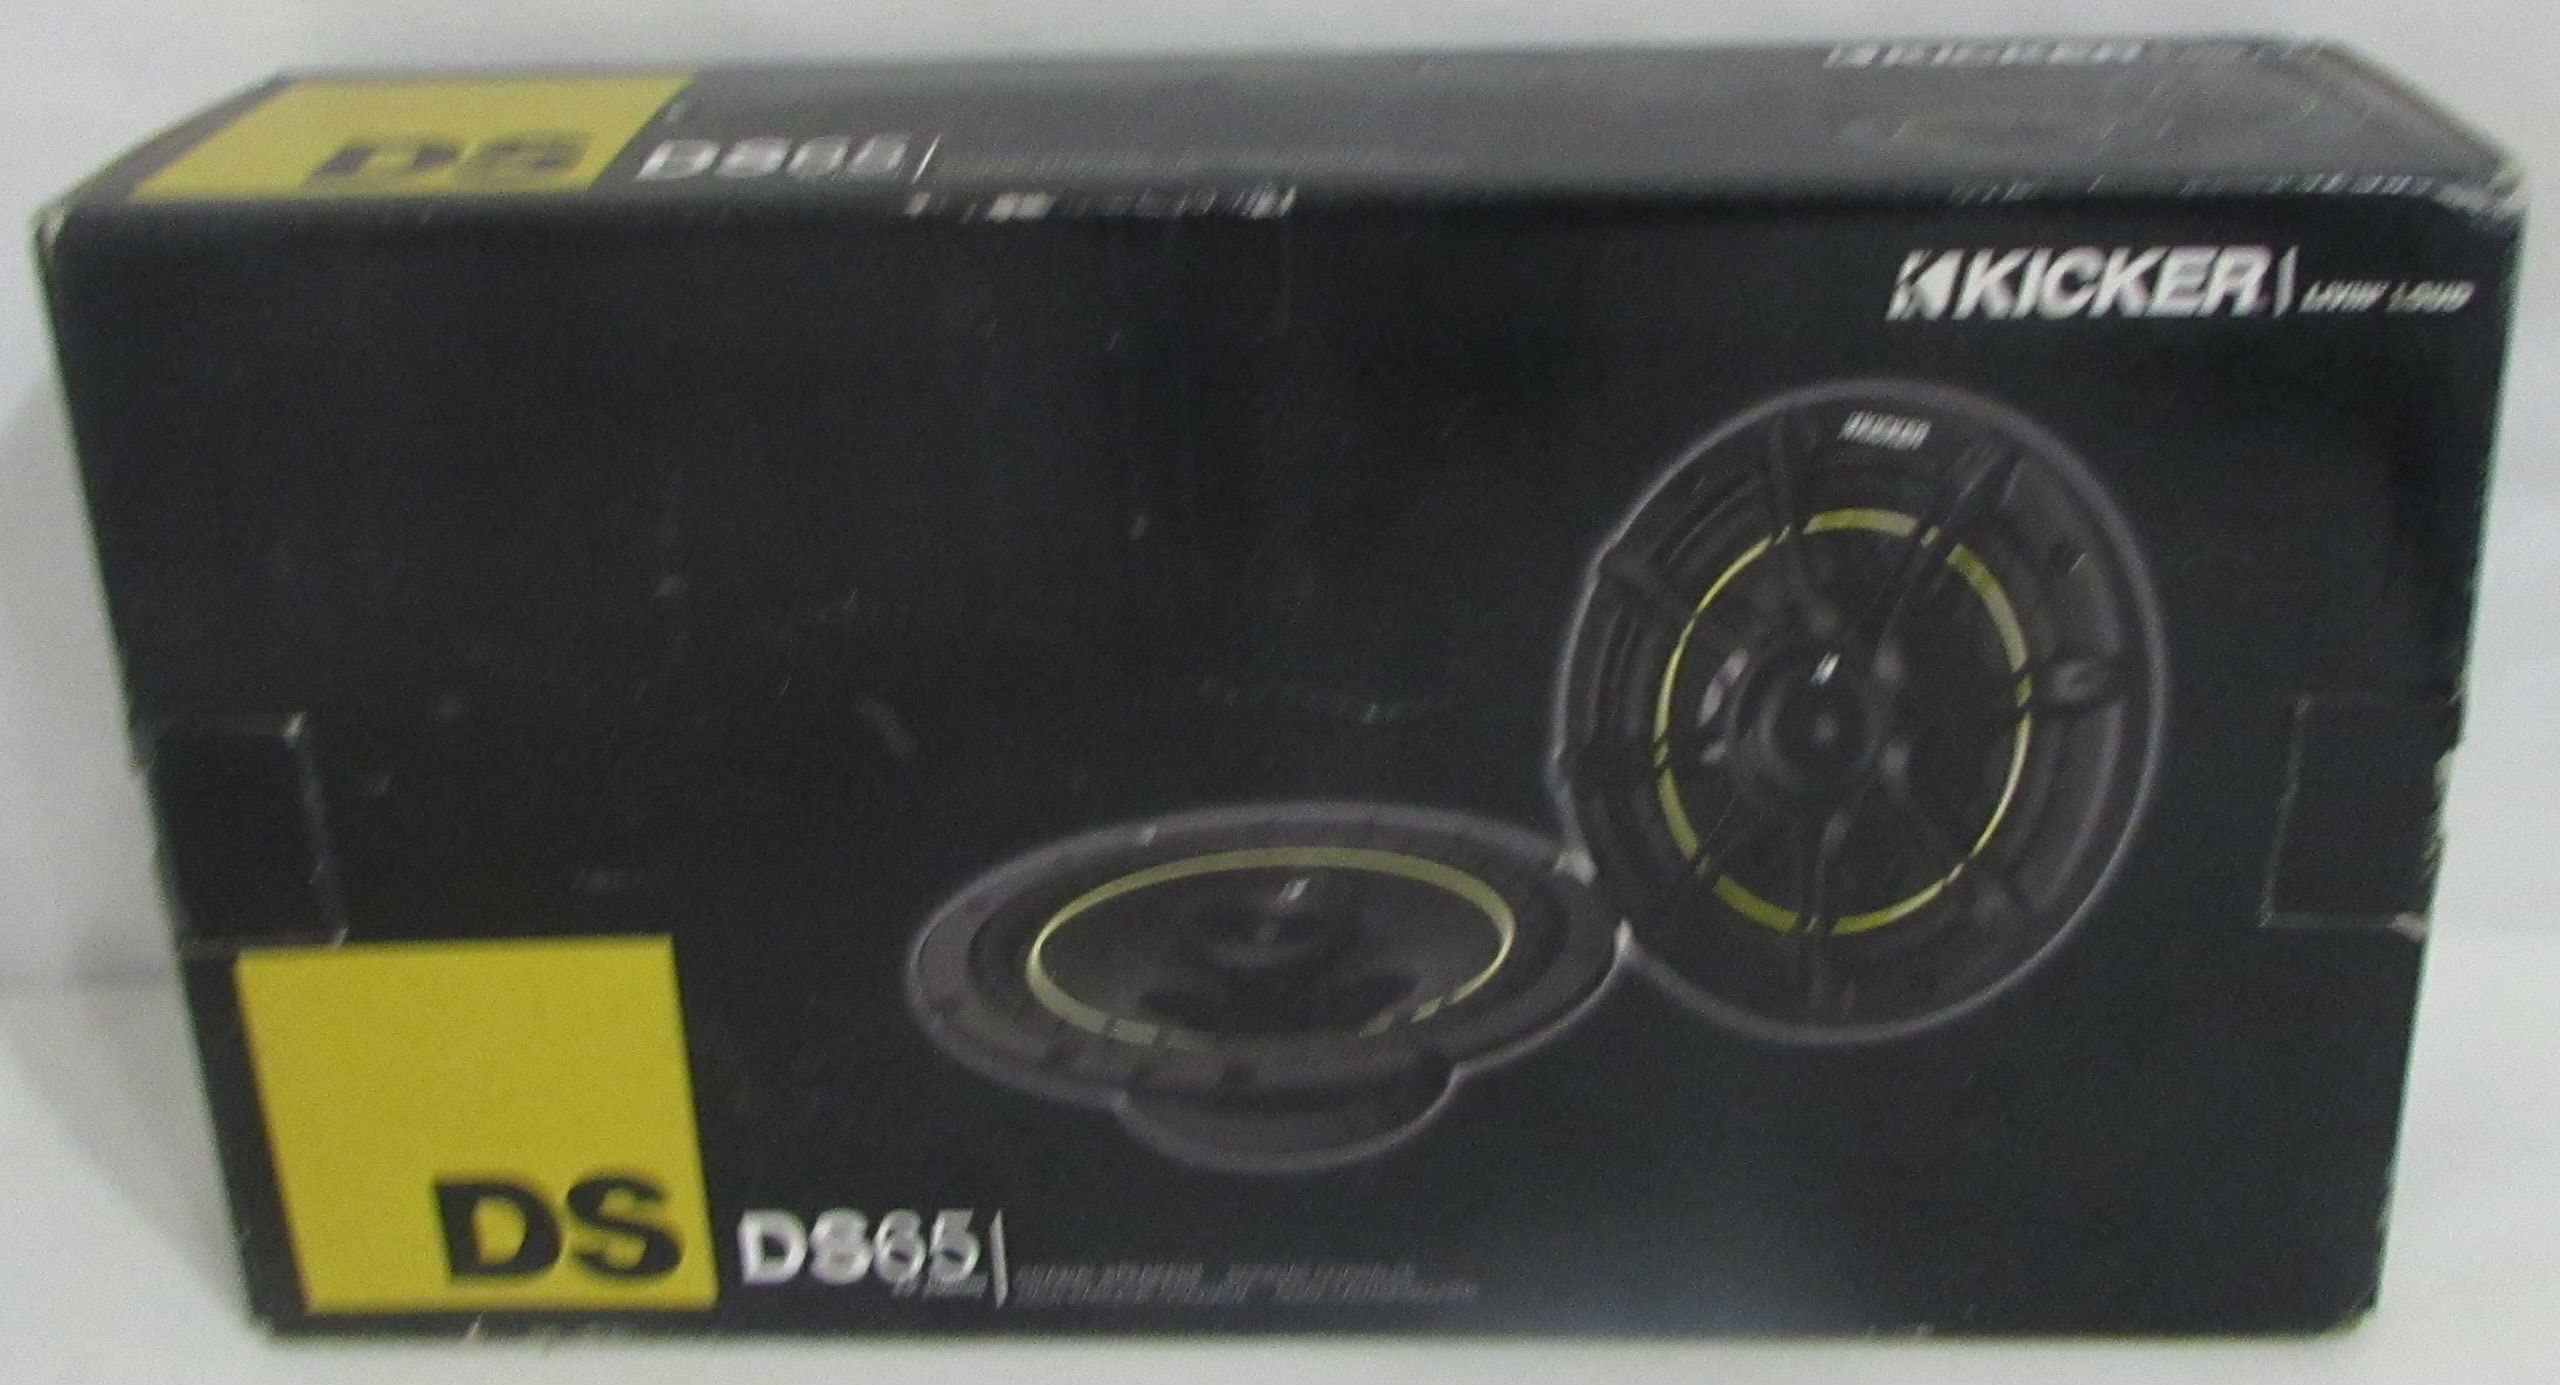 "KICKER New Ds693 6X9 3-Way Car Speakers + Ds65 6.5"" 2-Way Car Speakers 11Ds693"